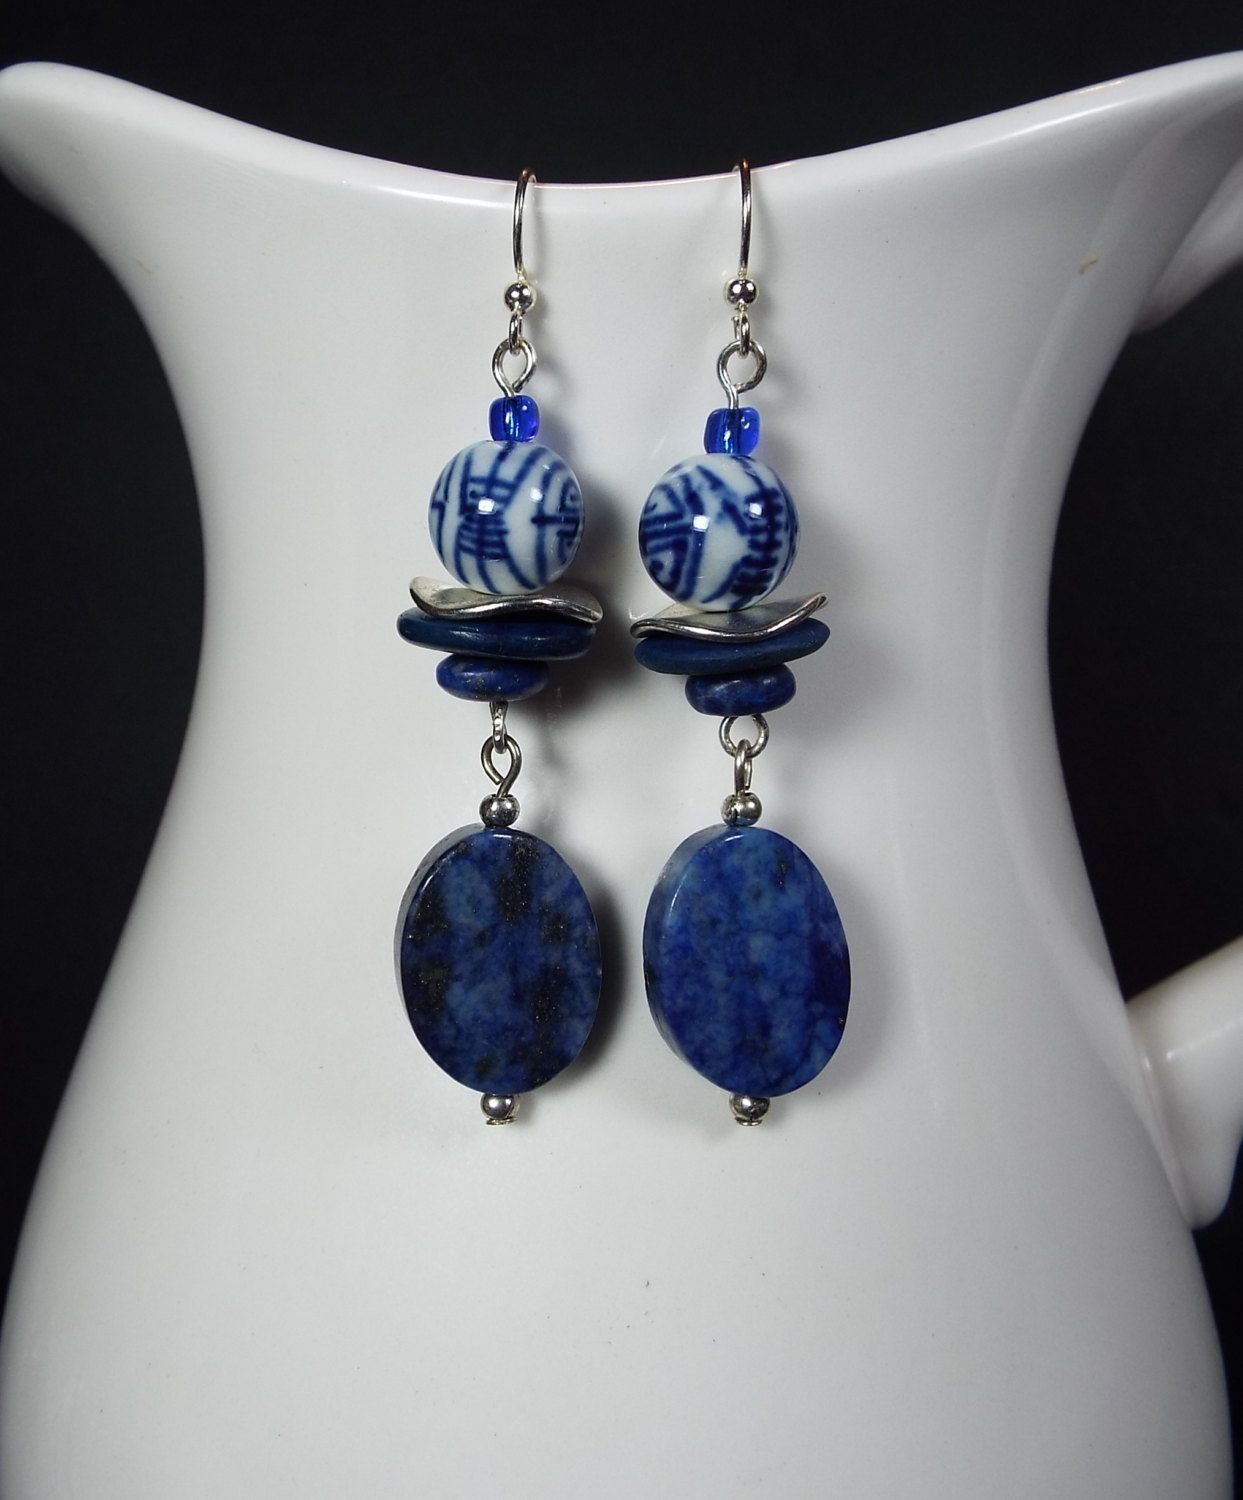 Blue Lapis Lazuli and Ceramic Chinese Bead Earrings by WingedPennyDesigns on Etsy